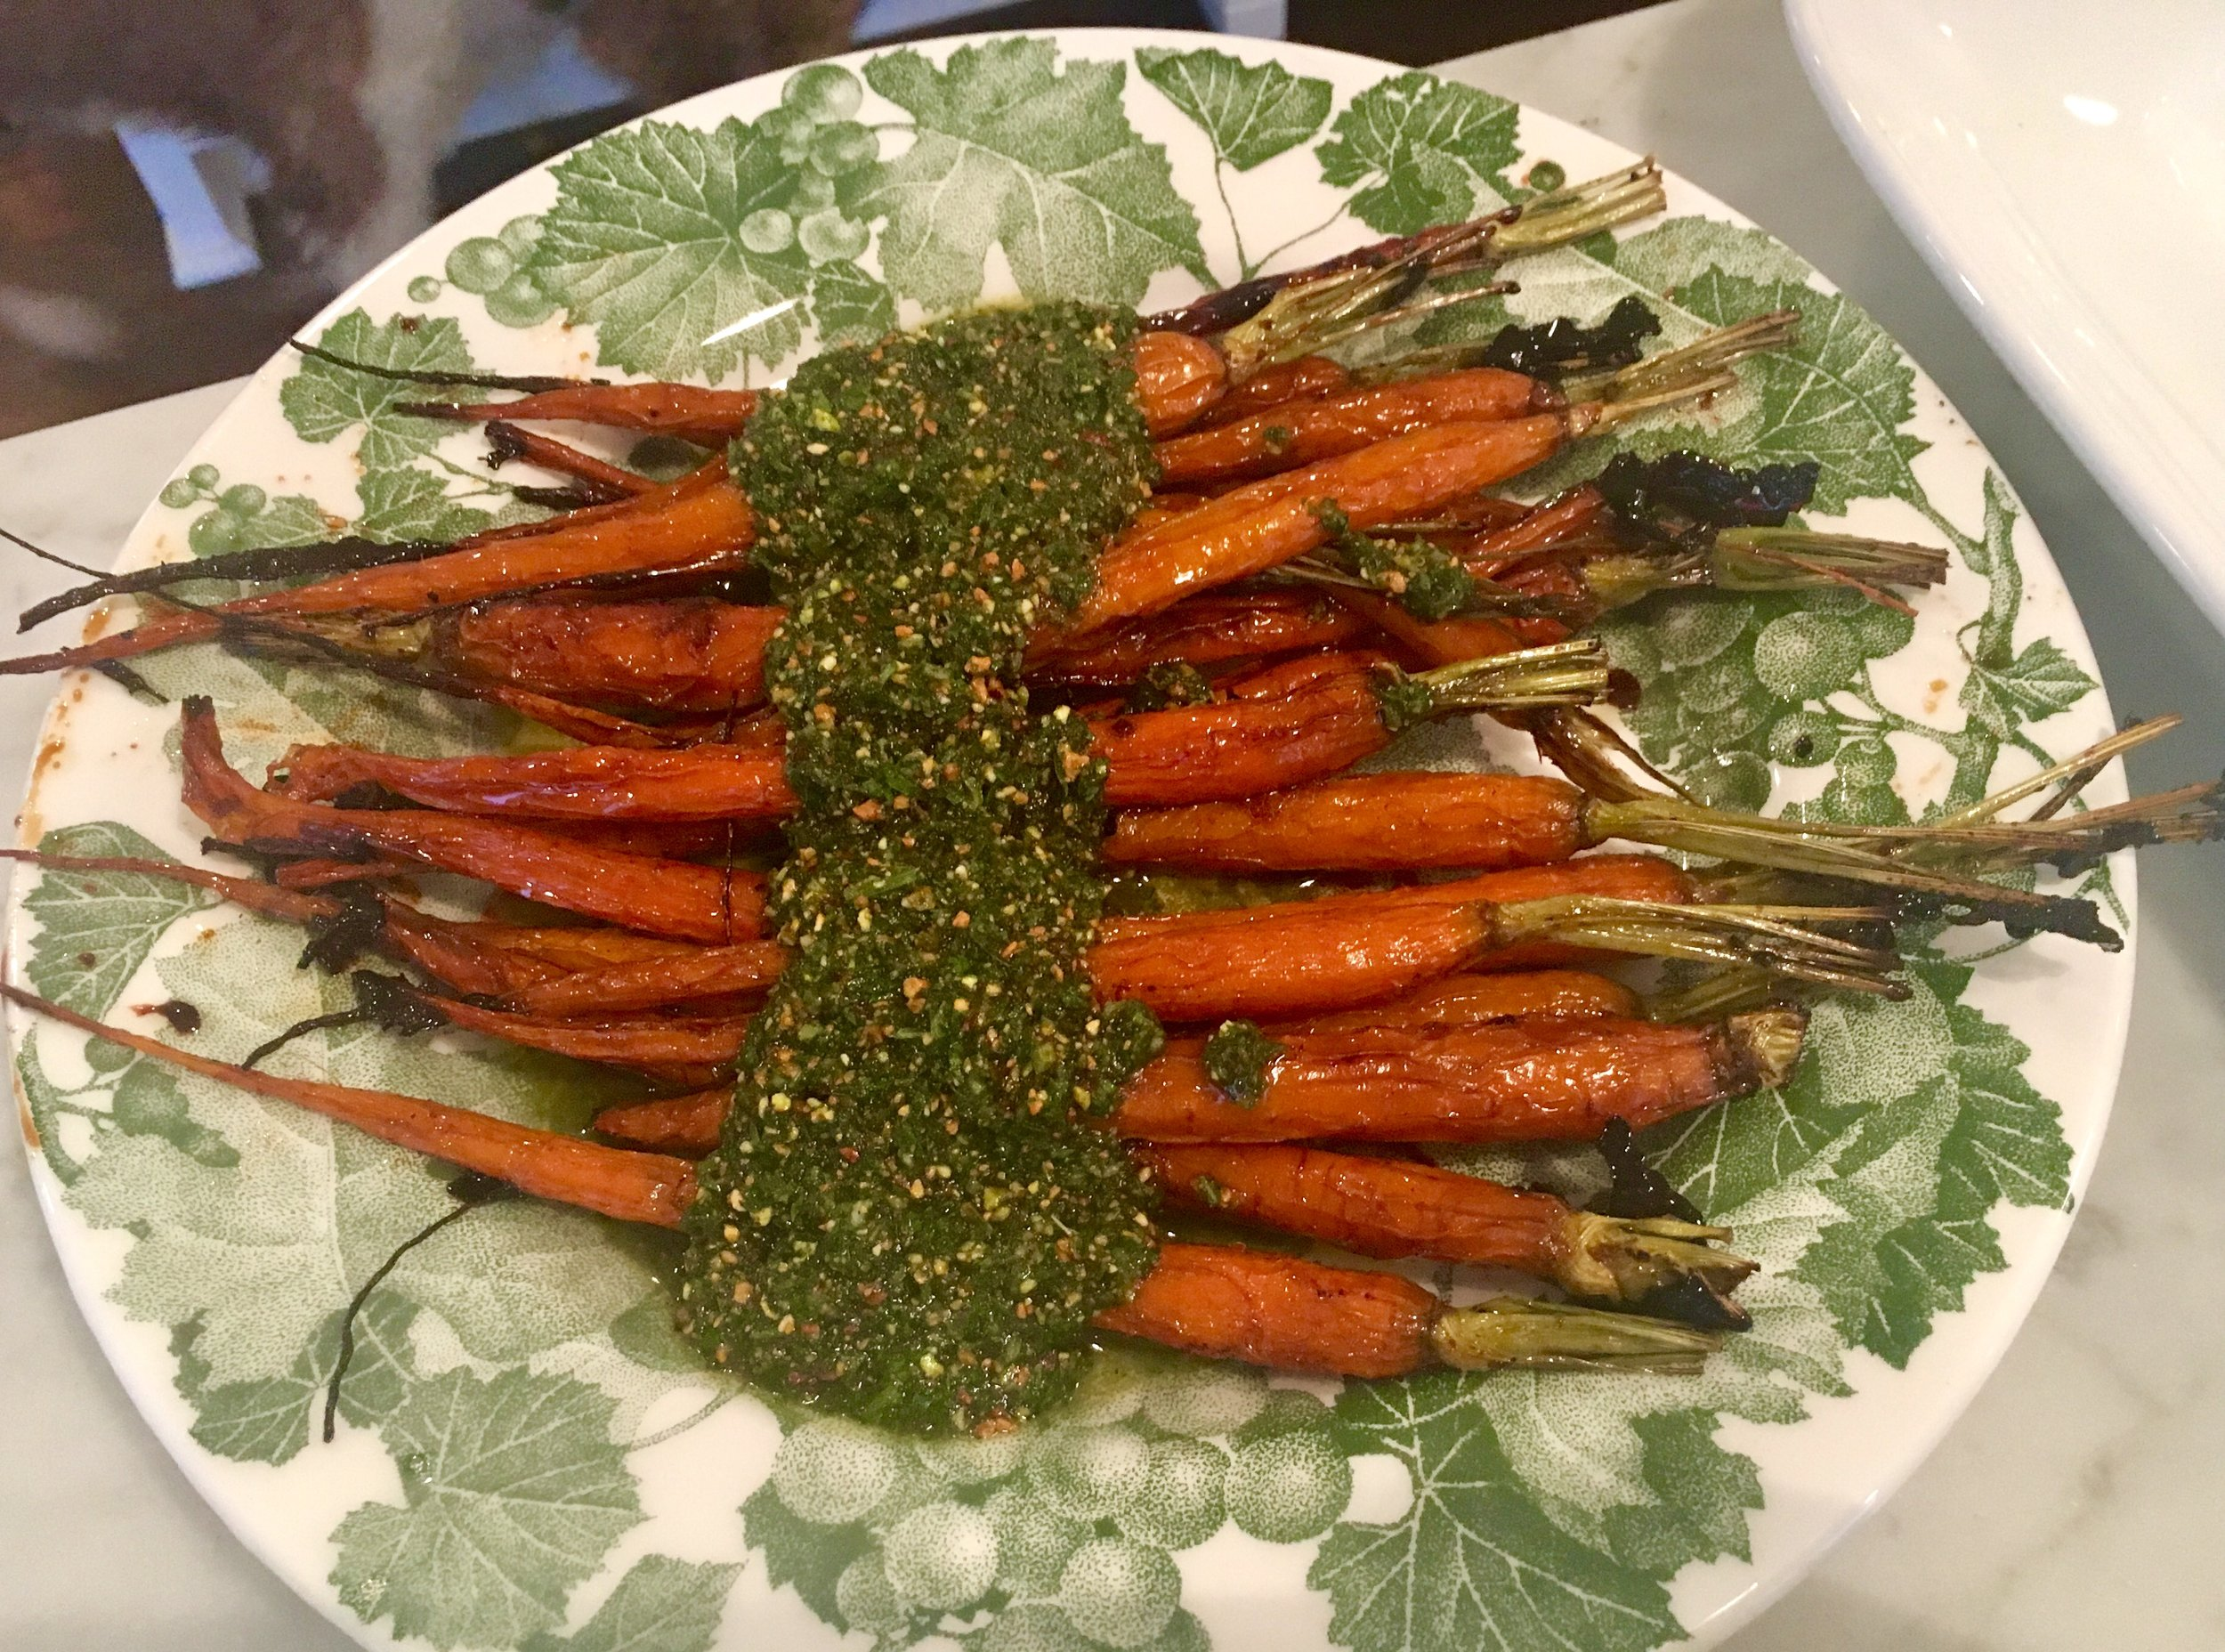 Balsamic roasted carrots with carrot top pesto